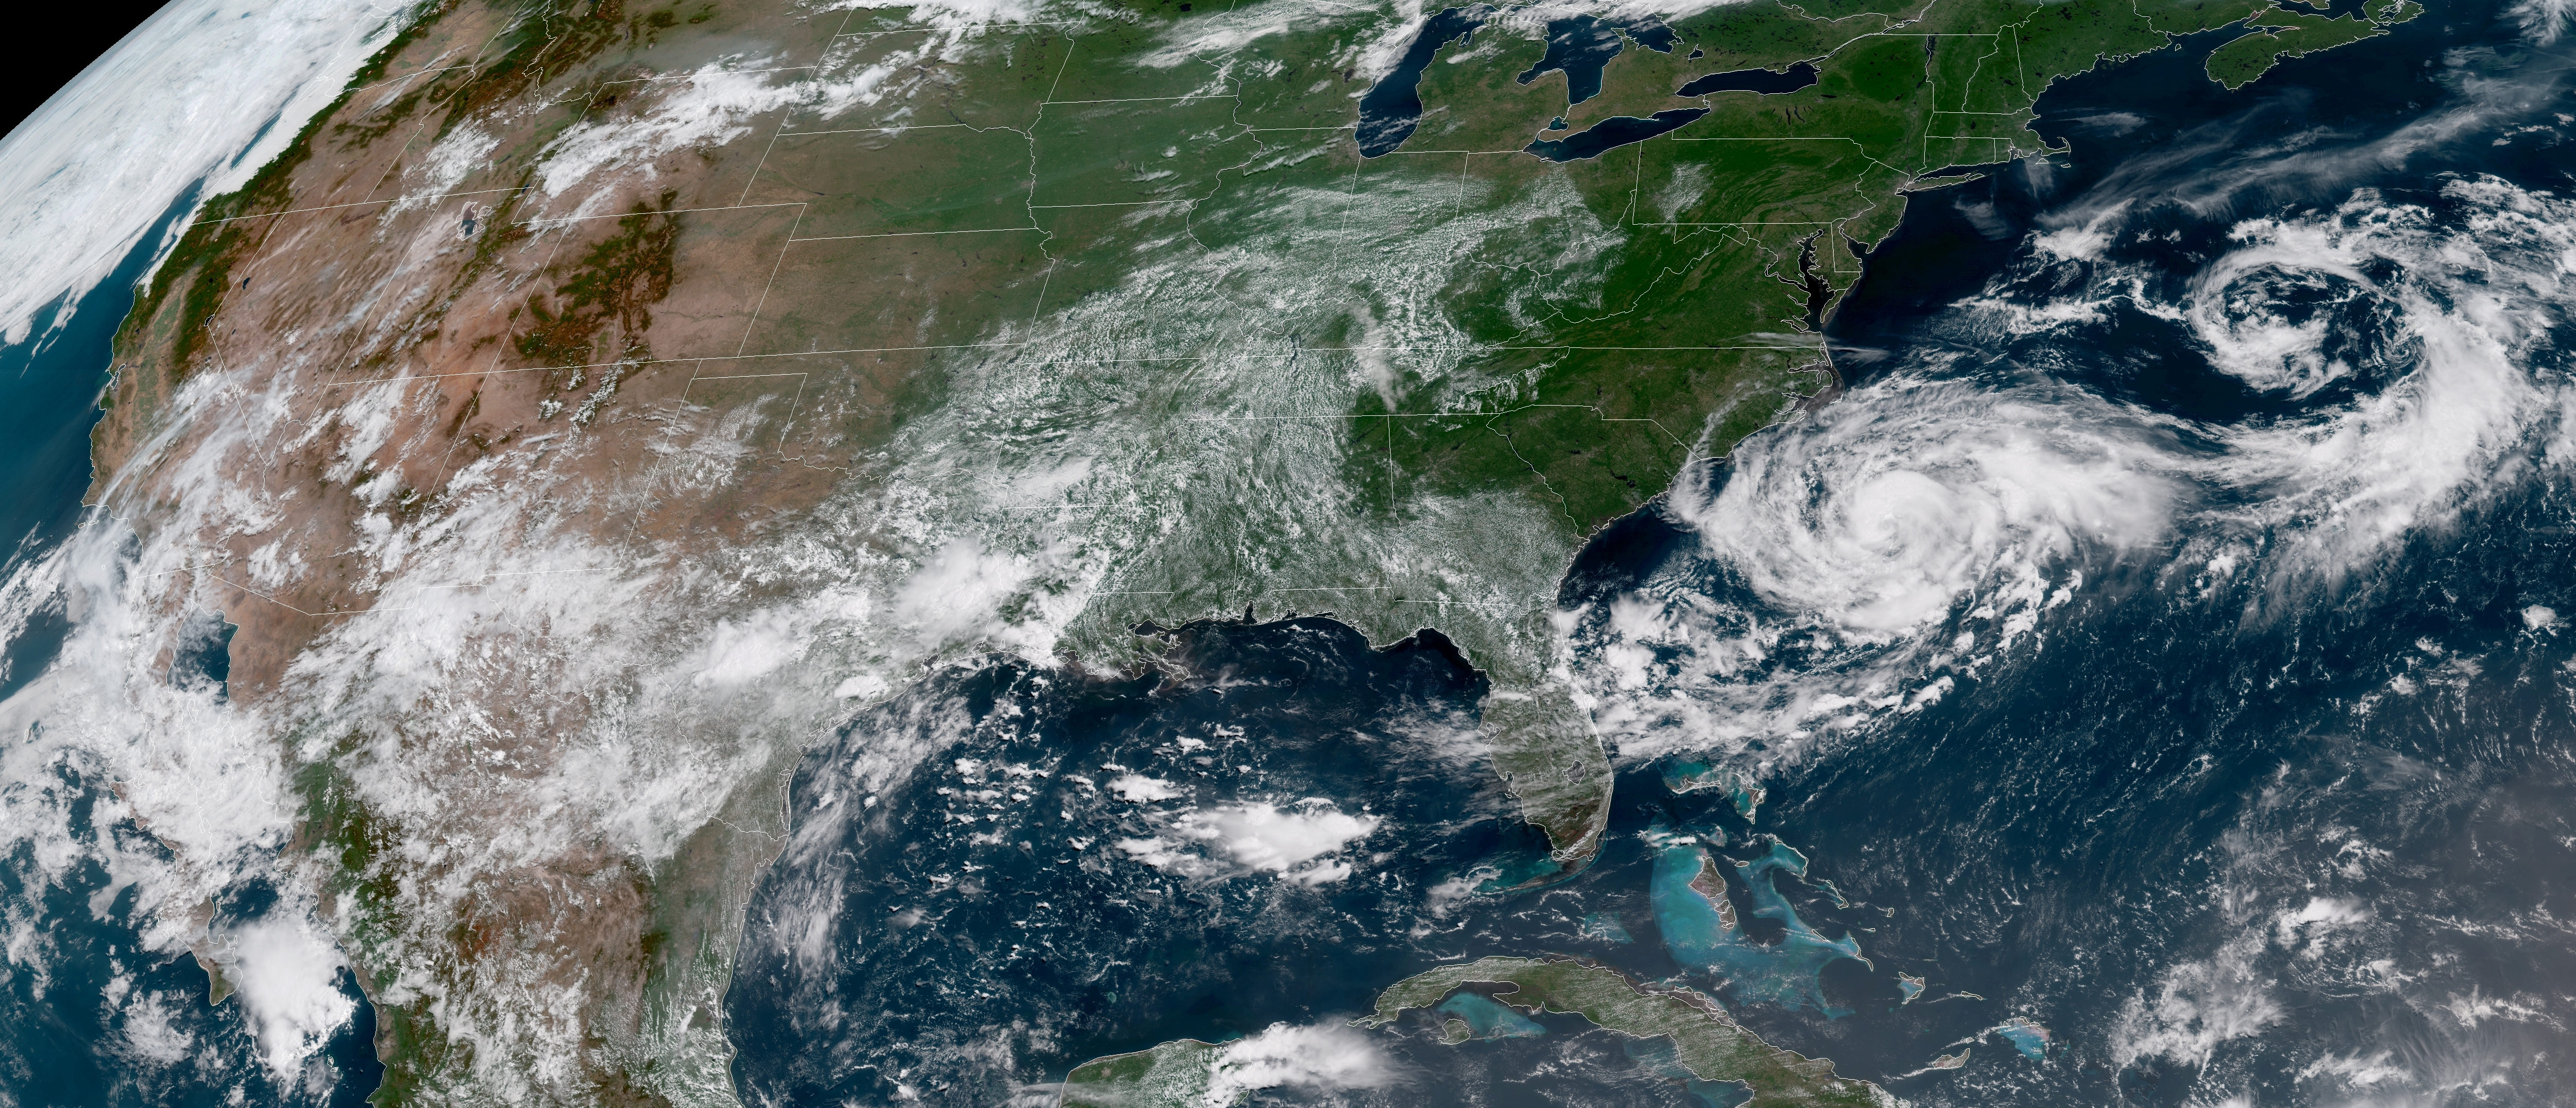 Tropical Storm Chris is shown off the eastern coast of North and South Carolina, U.S., in this satellite image July 9, 2018 at 16:12 UTC. NOAA/Goes-East Imagery/Handout via REUTERS.